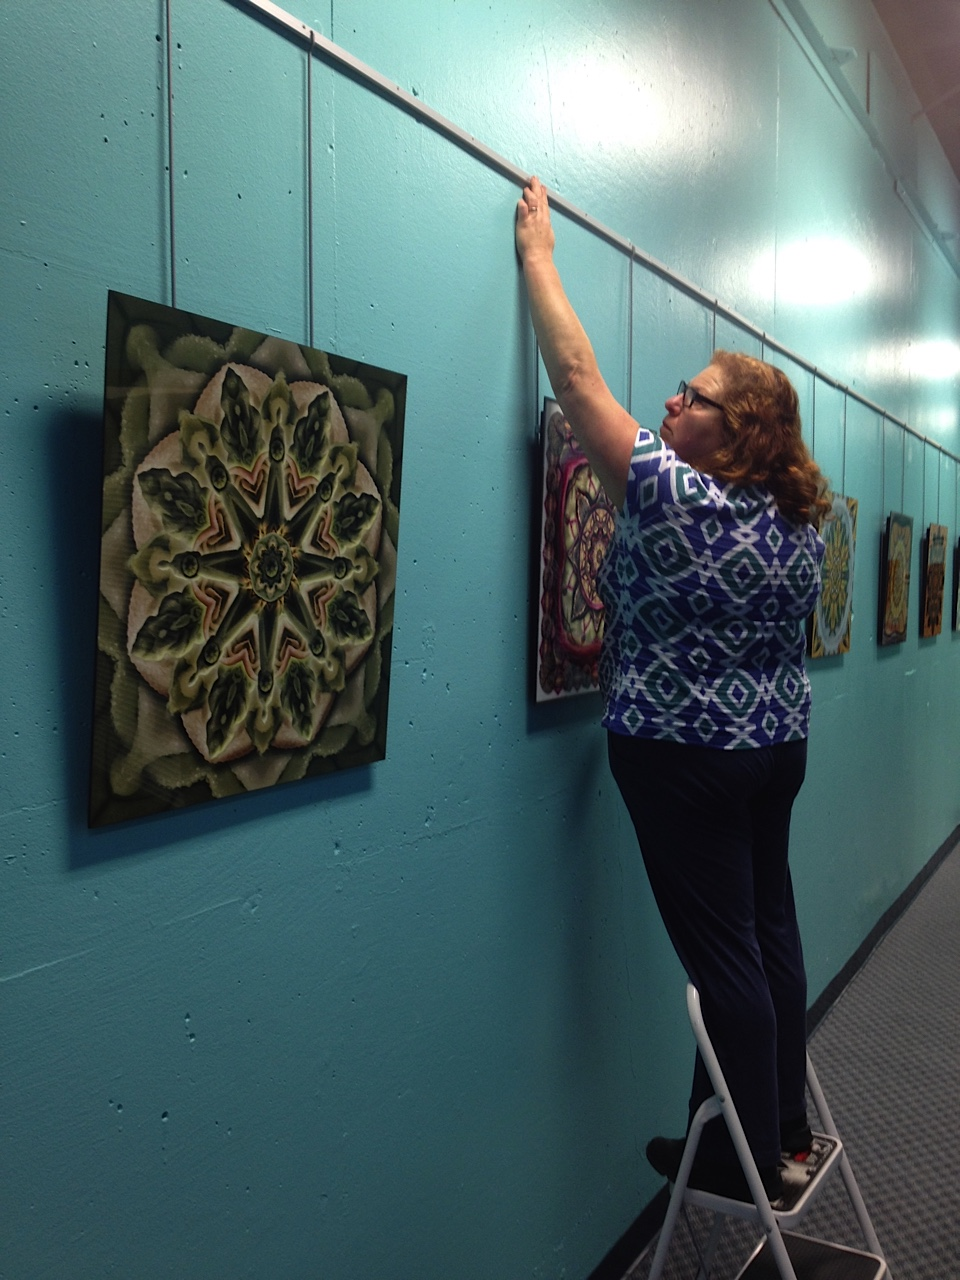 Hanging my work at the Federation